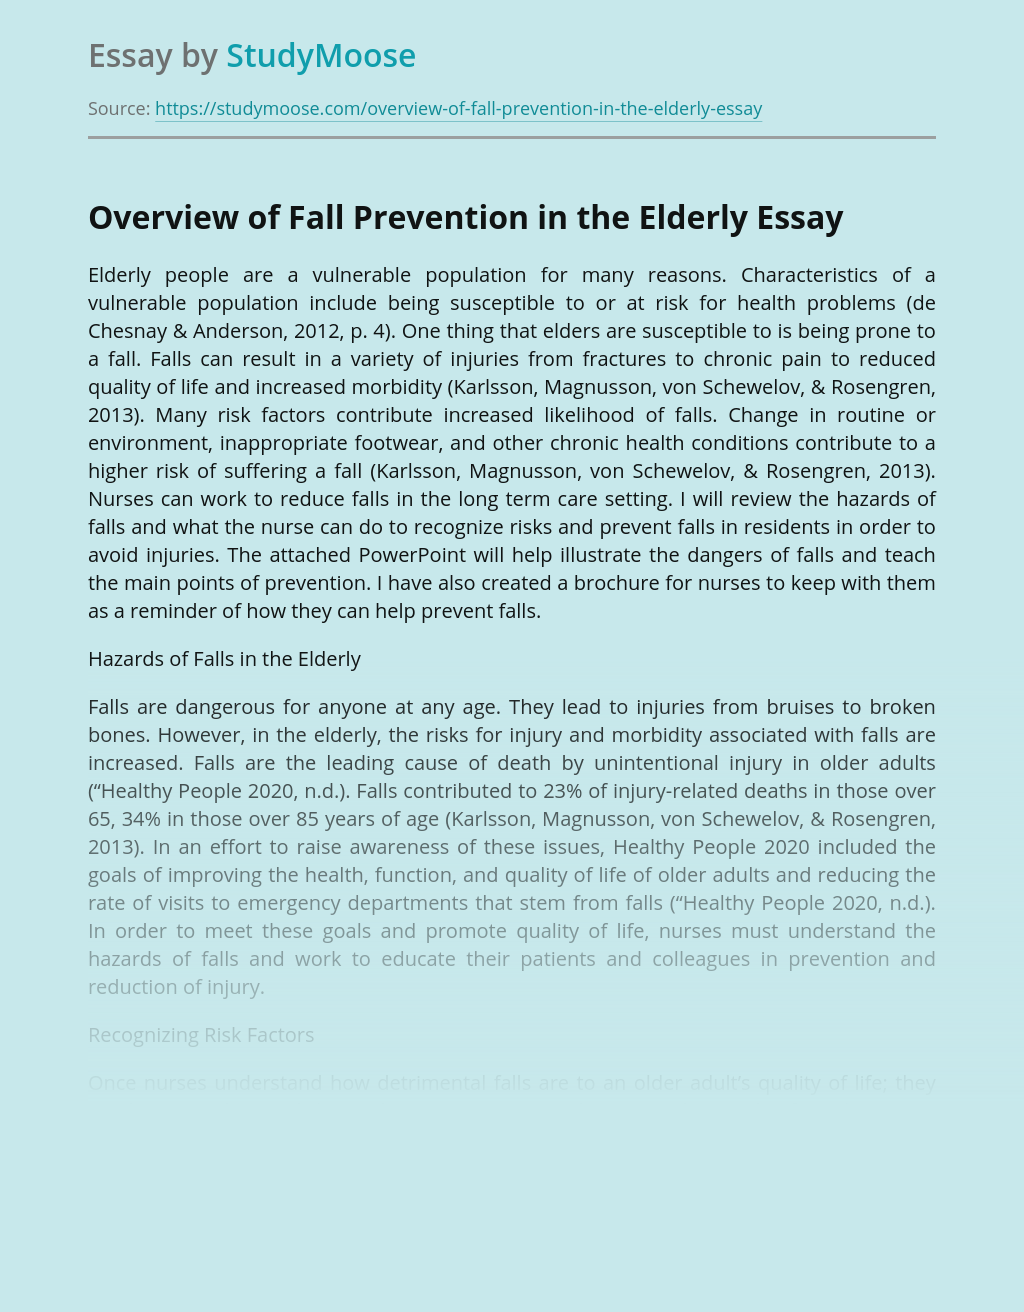 Overview of Fall Prevention in the Elderly